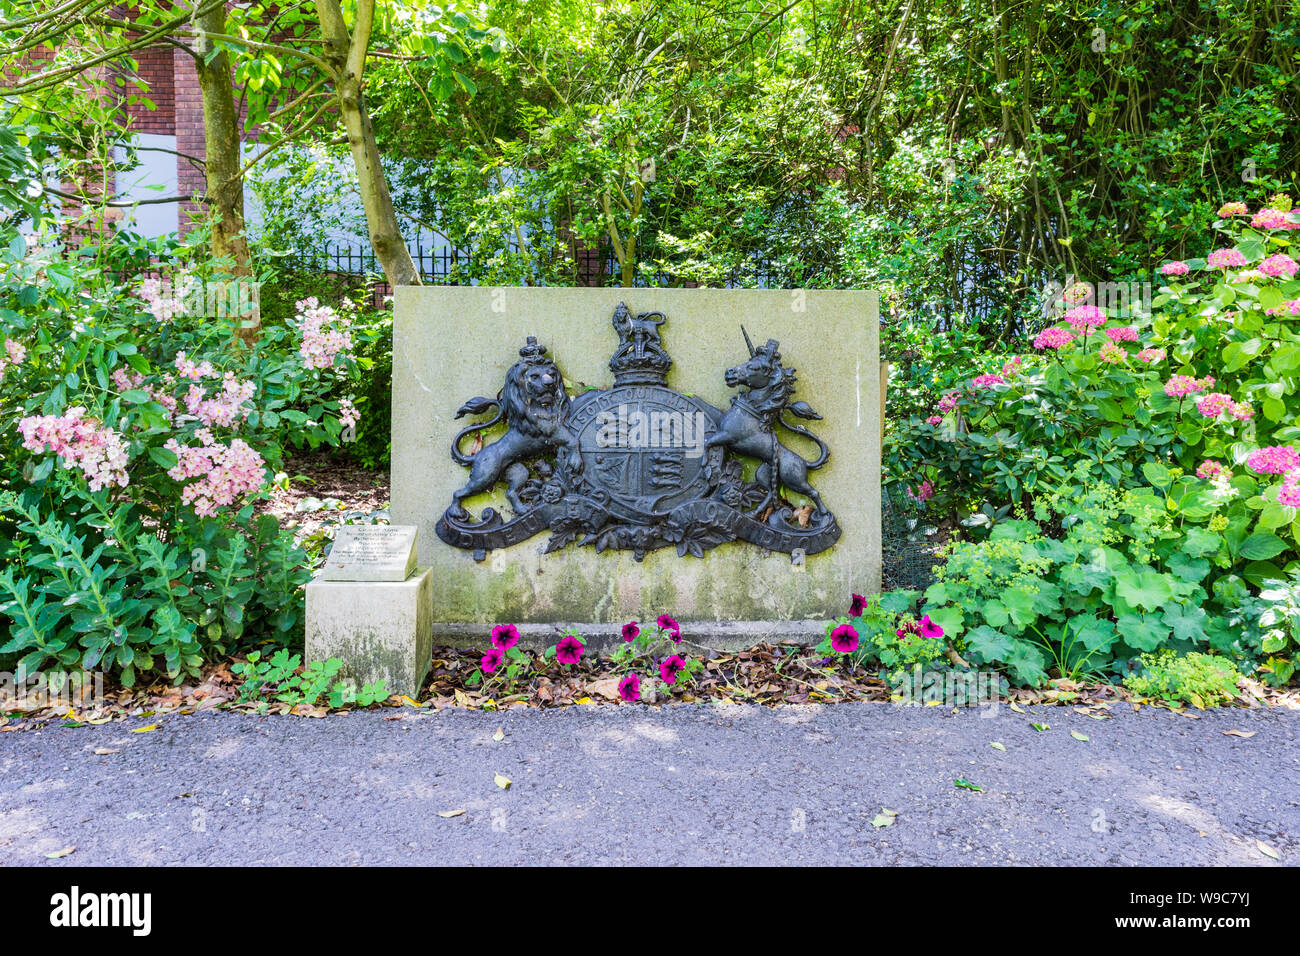 The coat of arms of the territorial army with a plaque commemorating the Royal Wiltshire Yeomanry and 4th battalion Wiltshire Regiment Stock Photo